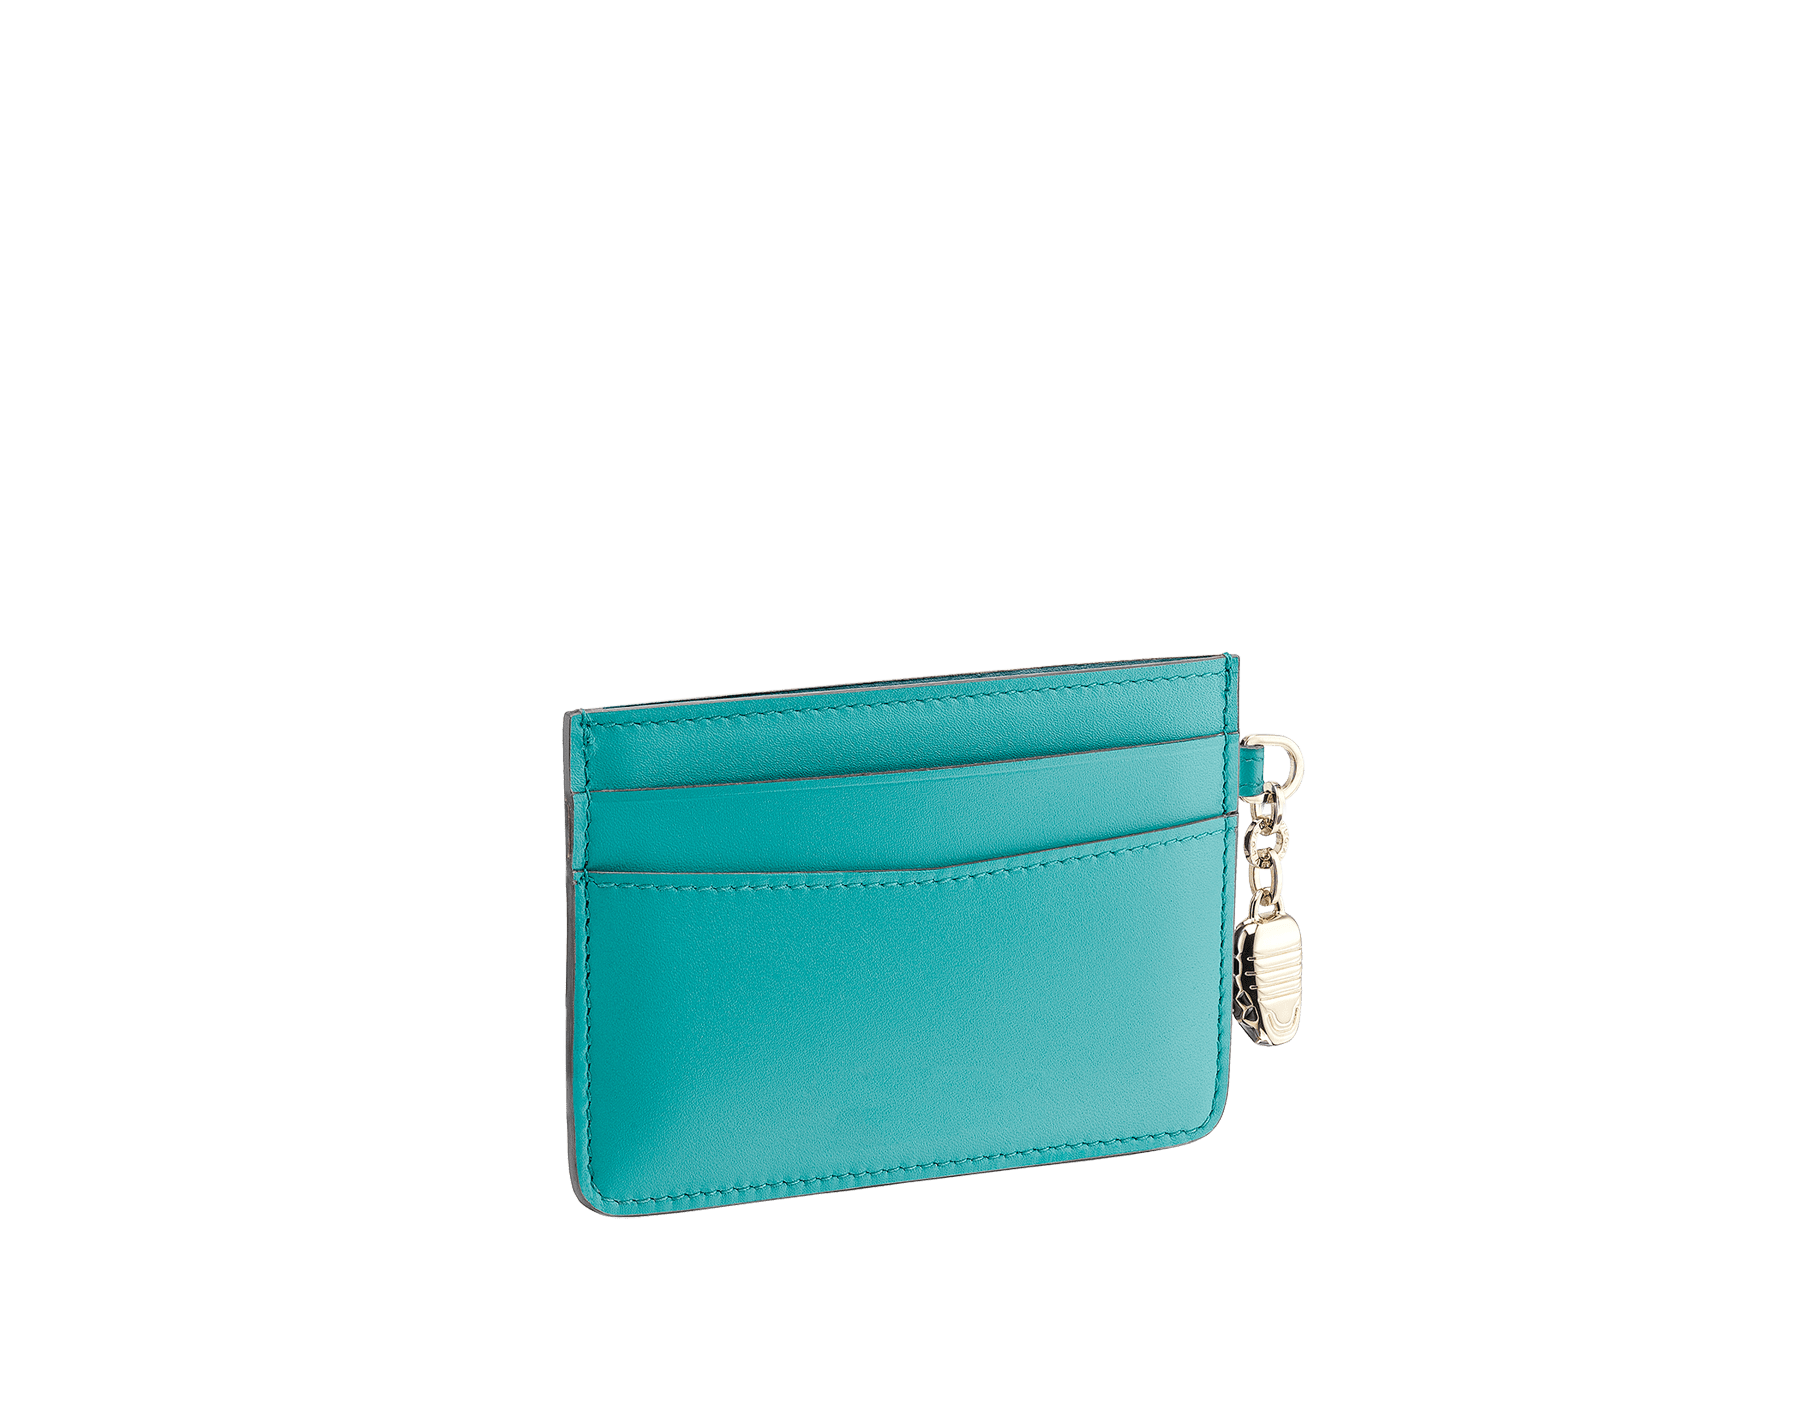 Serpenti Forever credit card holder in cobalt tourmaline and aster amethyst calf leather. Iconic snakehead charm in black and white enamel, with green malachite enamel eyes SEA-CC-HOLDER-CLc image 2